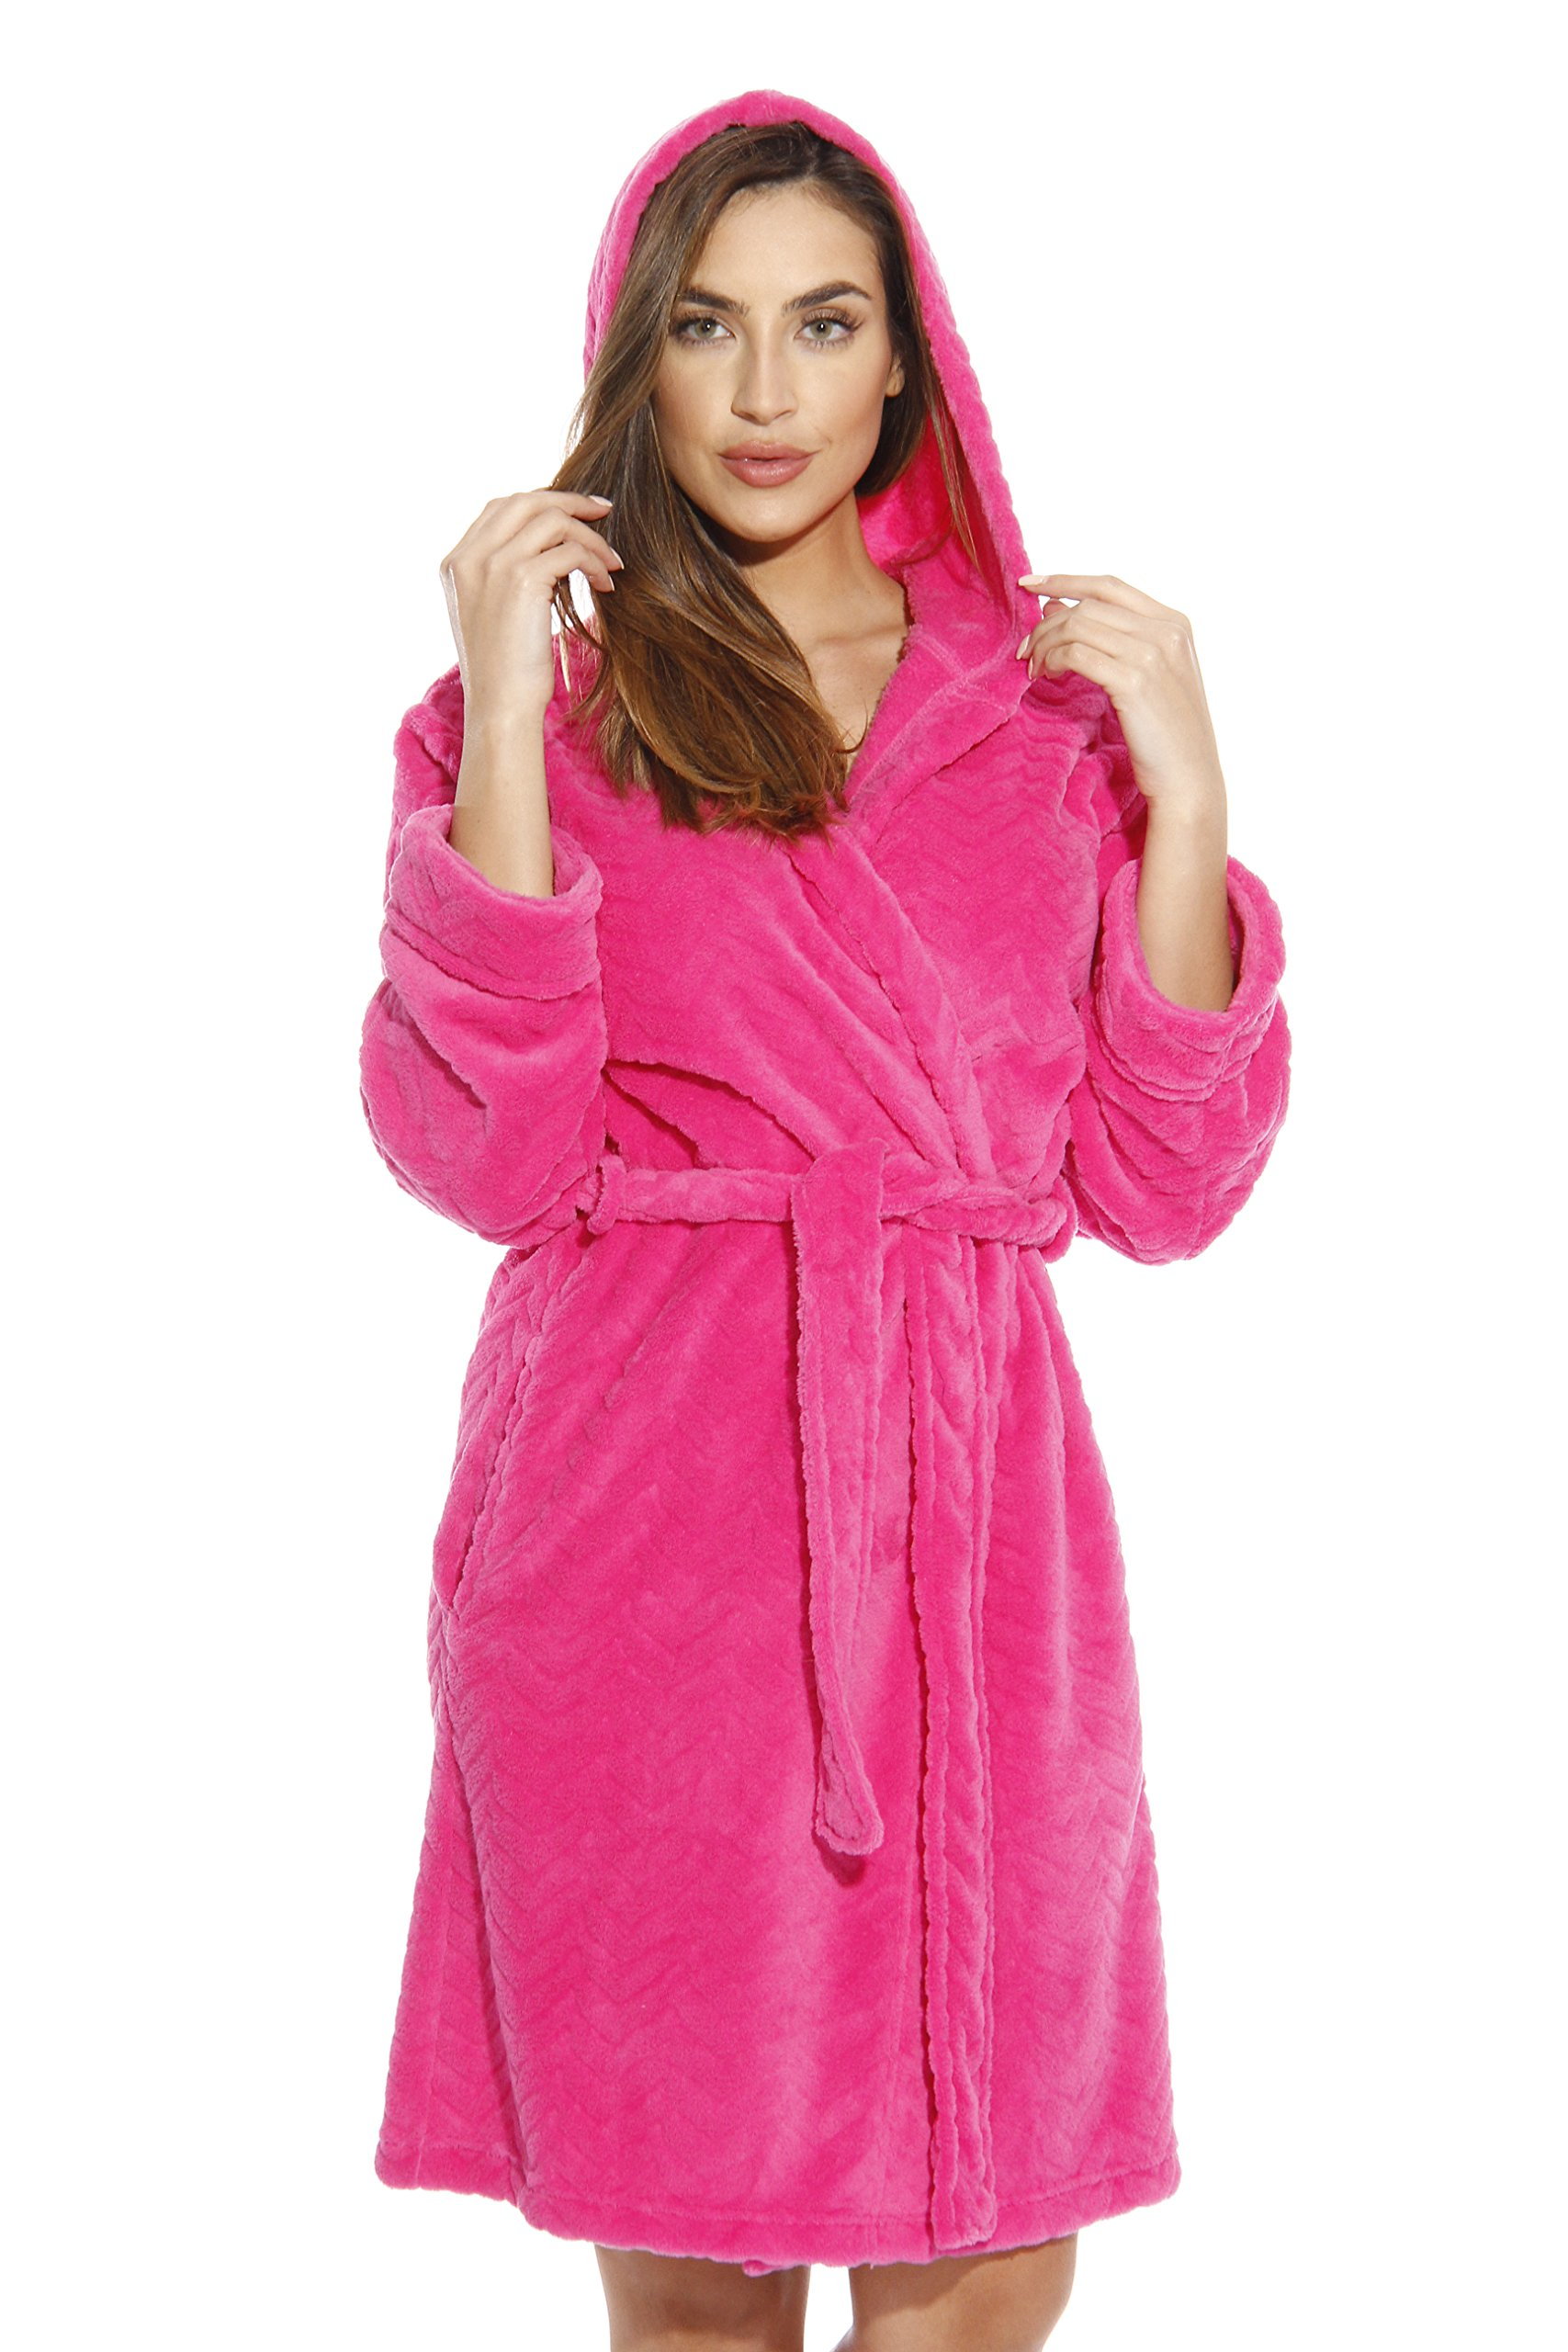 6341-Fuchsia-S Just Love Kimono Robe / Hooded Bath Robes for Women